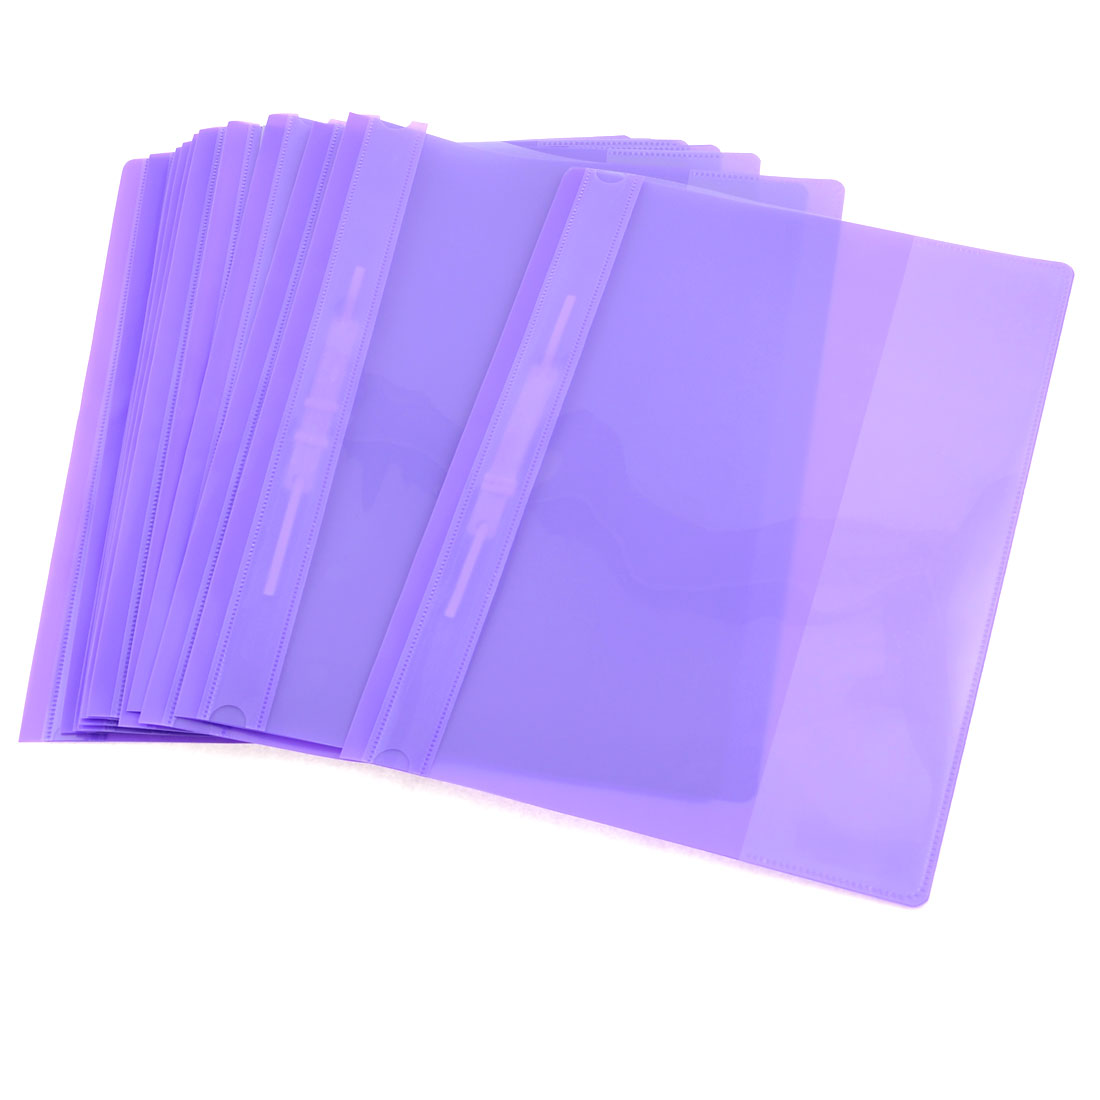 12 Pcs Size A4 Paper File Document Case Conference Folder Purple Clear